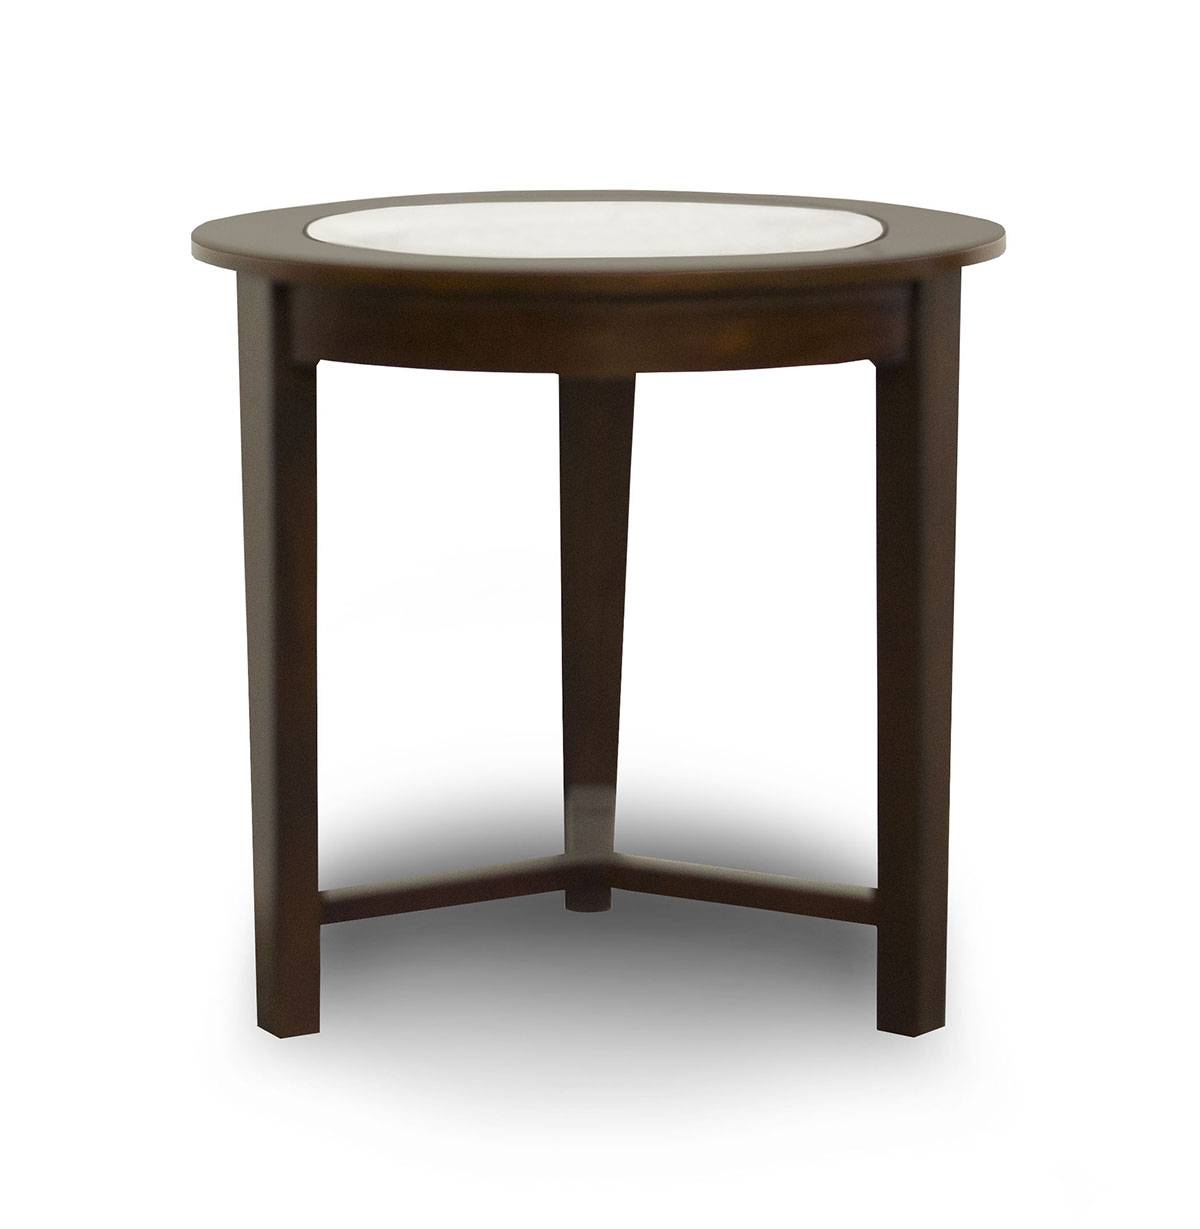 Hotel Furniture Outlet » Newfurniture Categories » Coffee Tables throughout Half Circle Coffee Tables (Image 21 of 30)